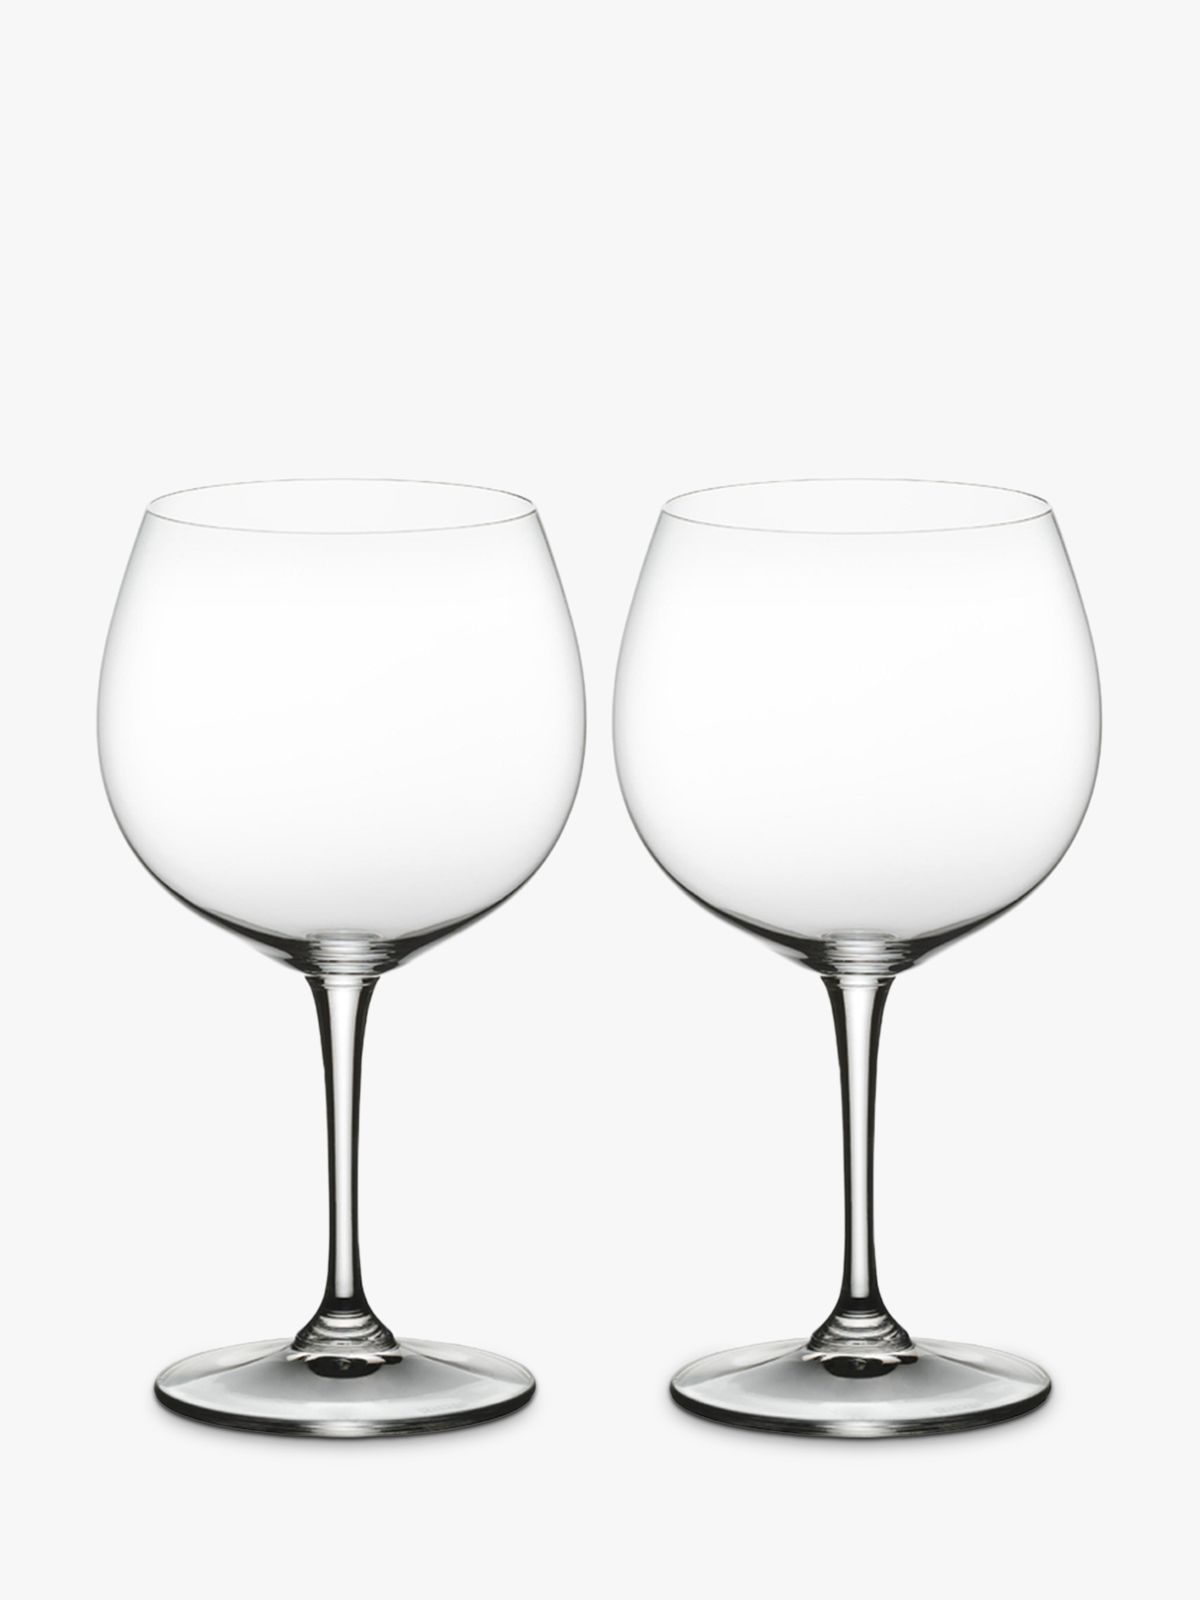 Riedel Riedel Vinum Oaked Chardonnay Glass, Clear, Set of 2